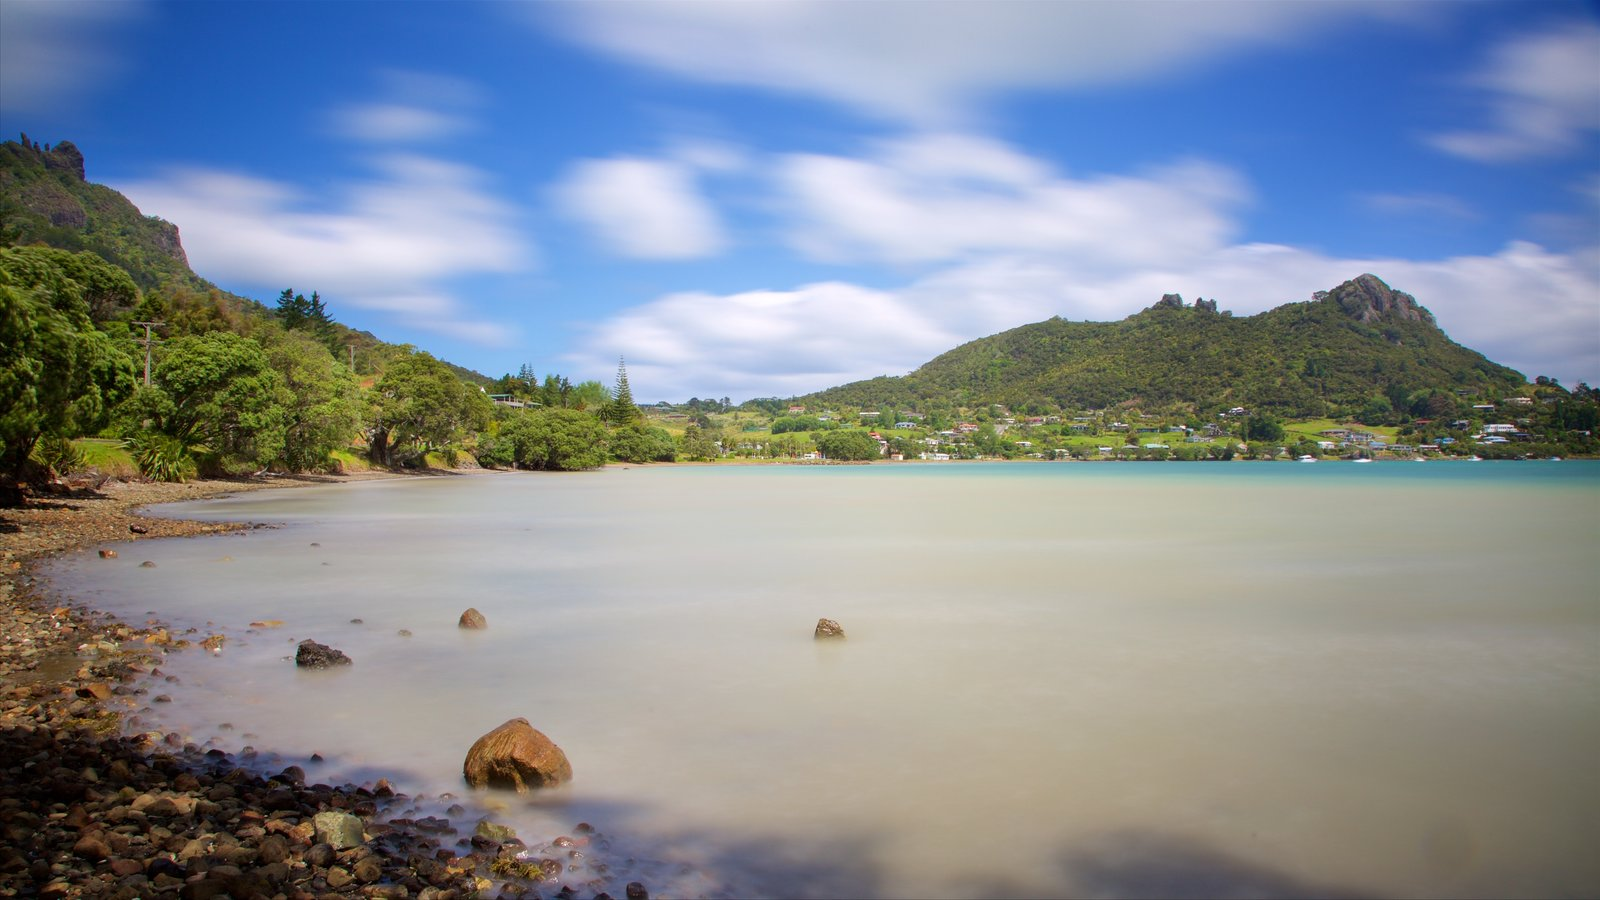 Whangarei featuring a bay or harbor and a pebble beach